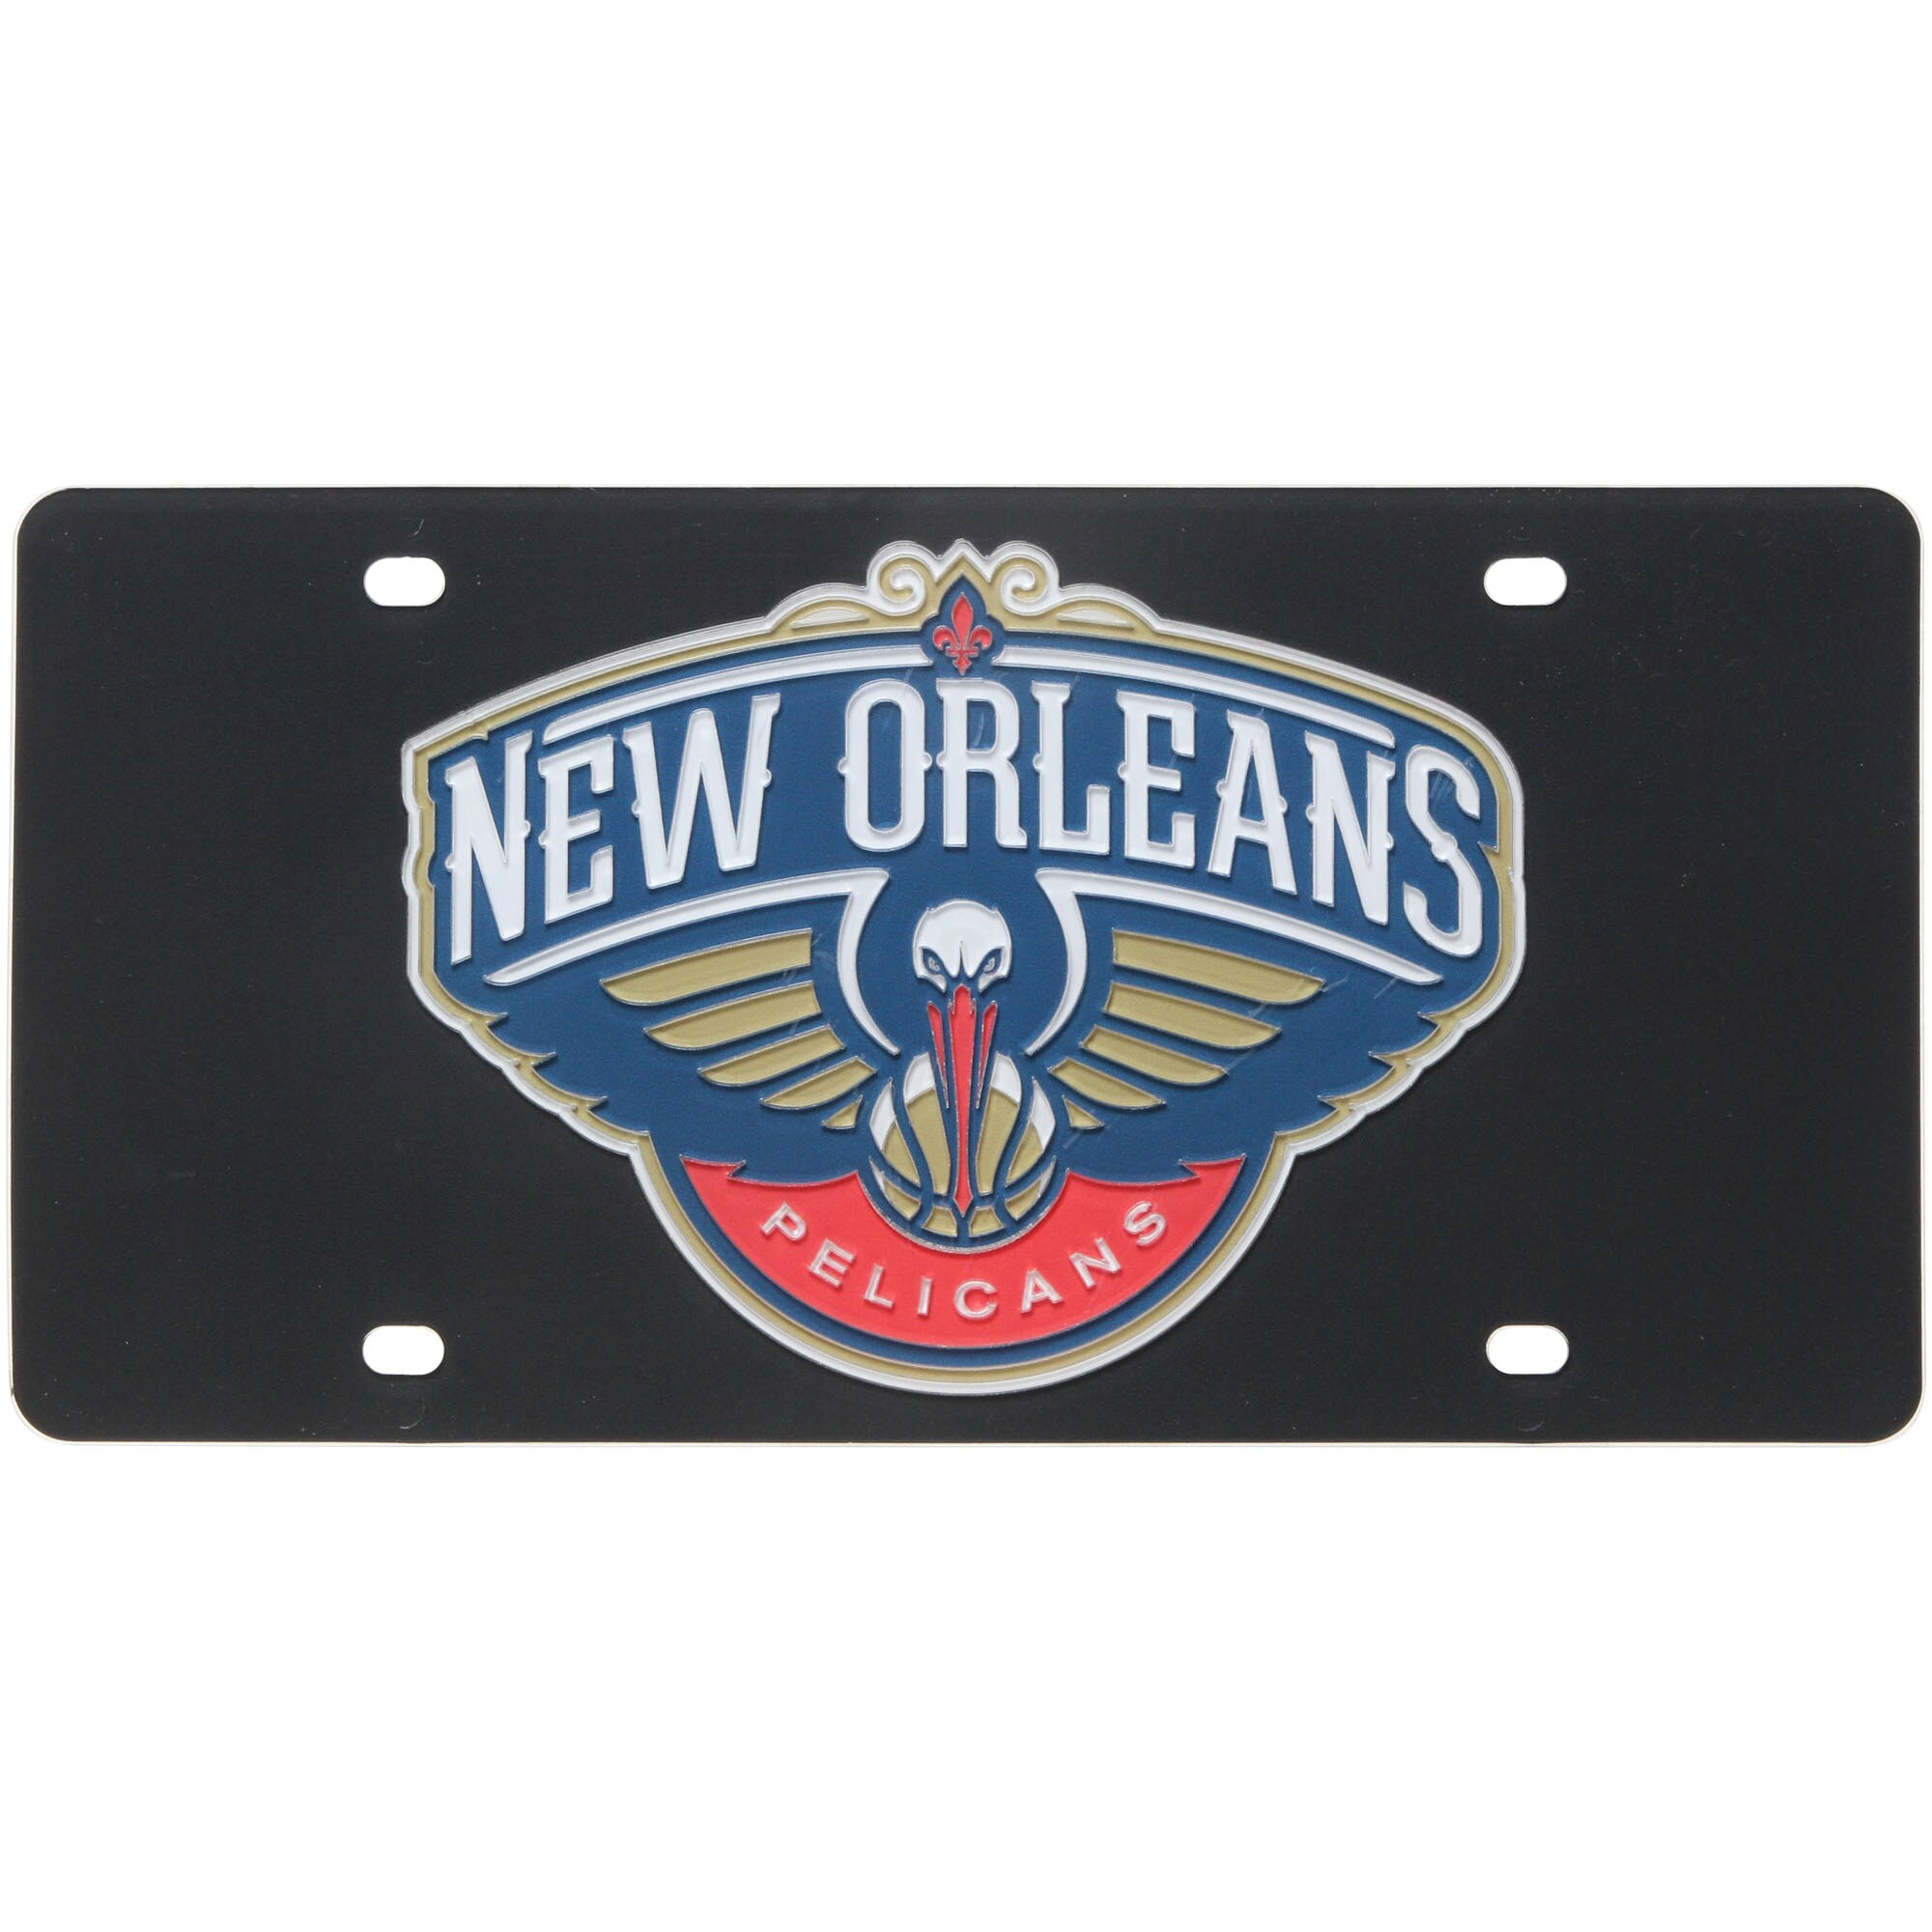 New Orleans Pelicans License Plate - Black